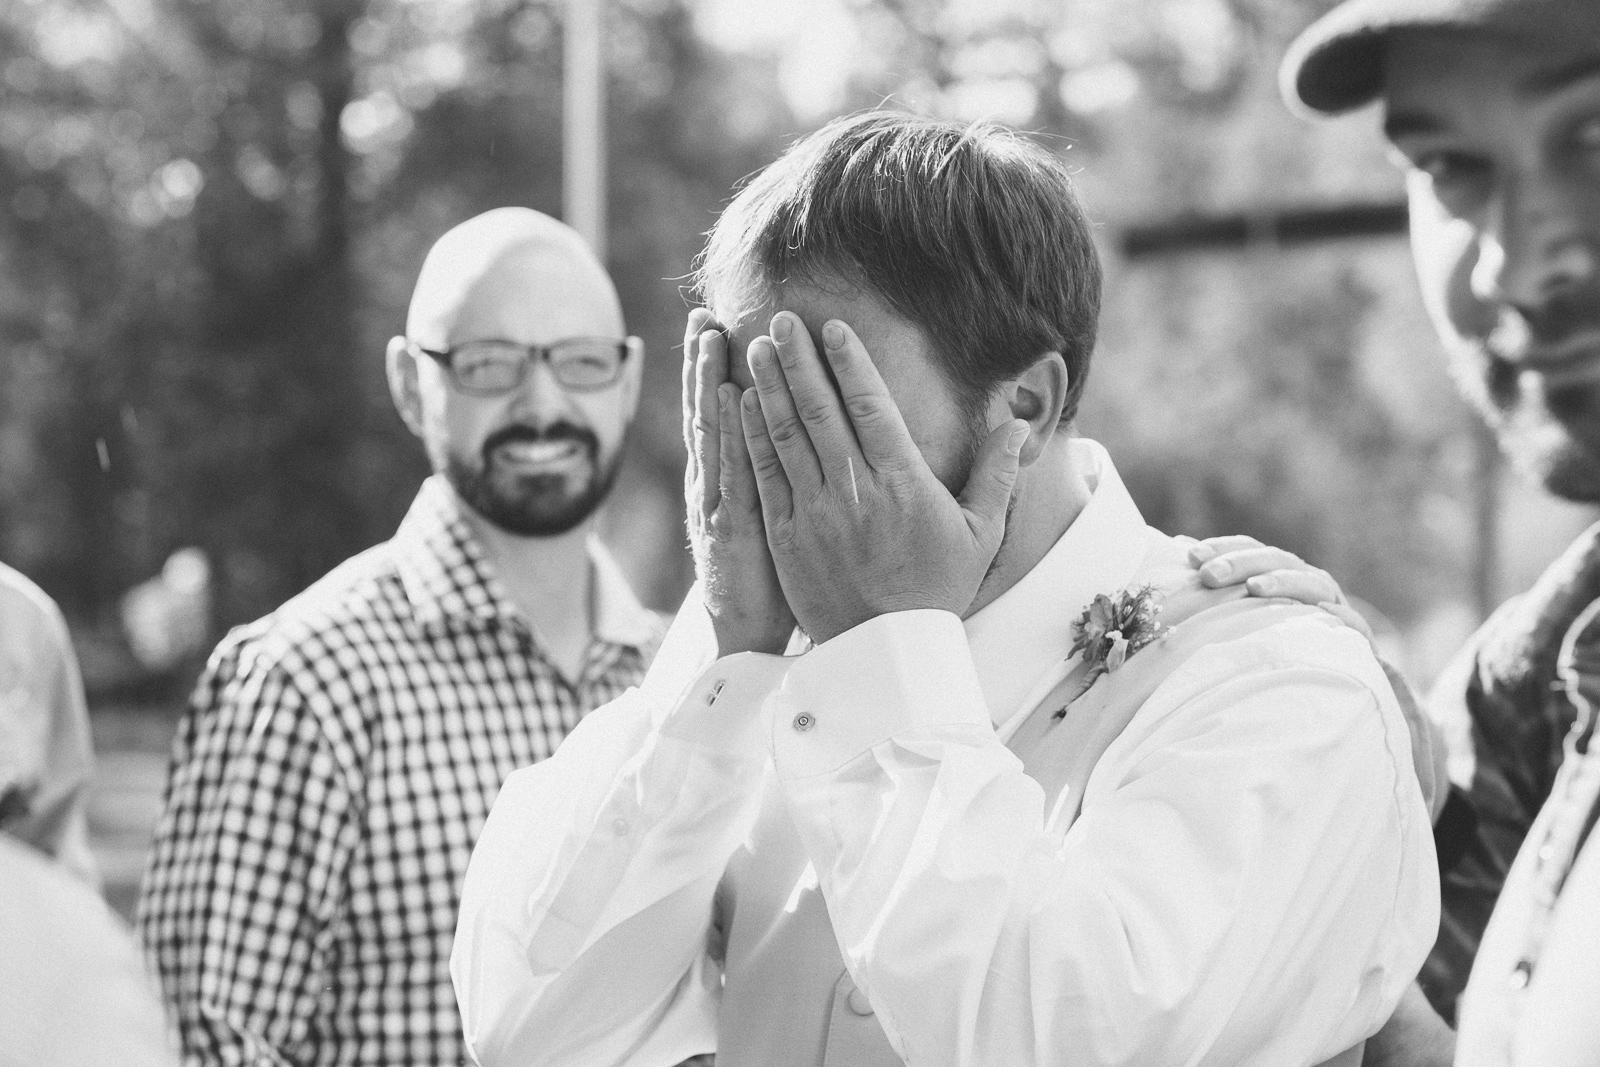 055-wedding-party-bus-fun-photography-ceremony